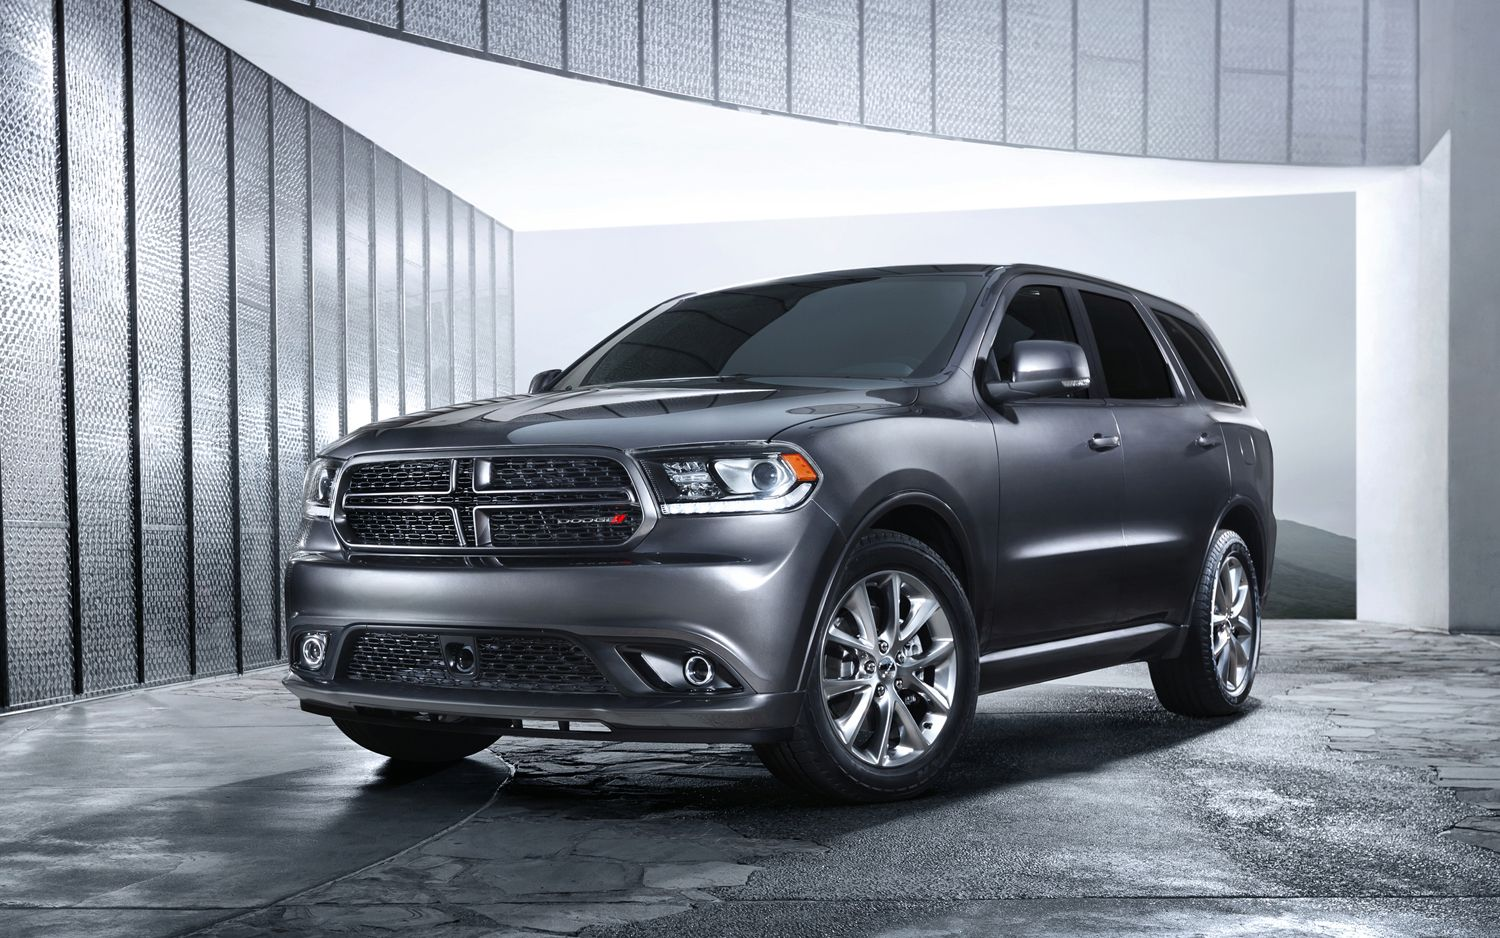 The hemi powered 2014 dodge durango is a spacious suv with the power of a performance car forging a people carrier for people who love to drive